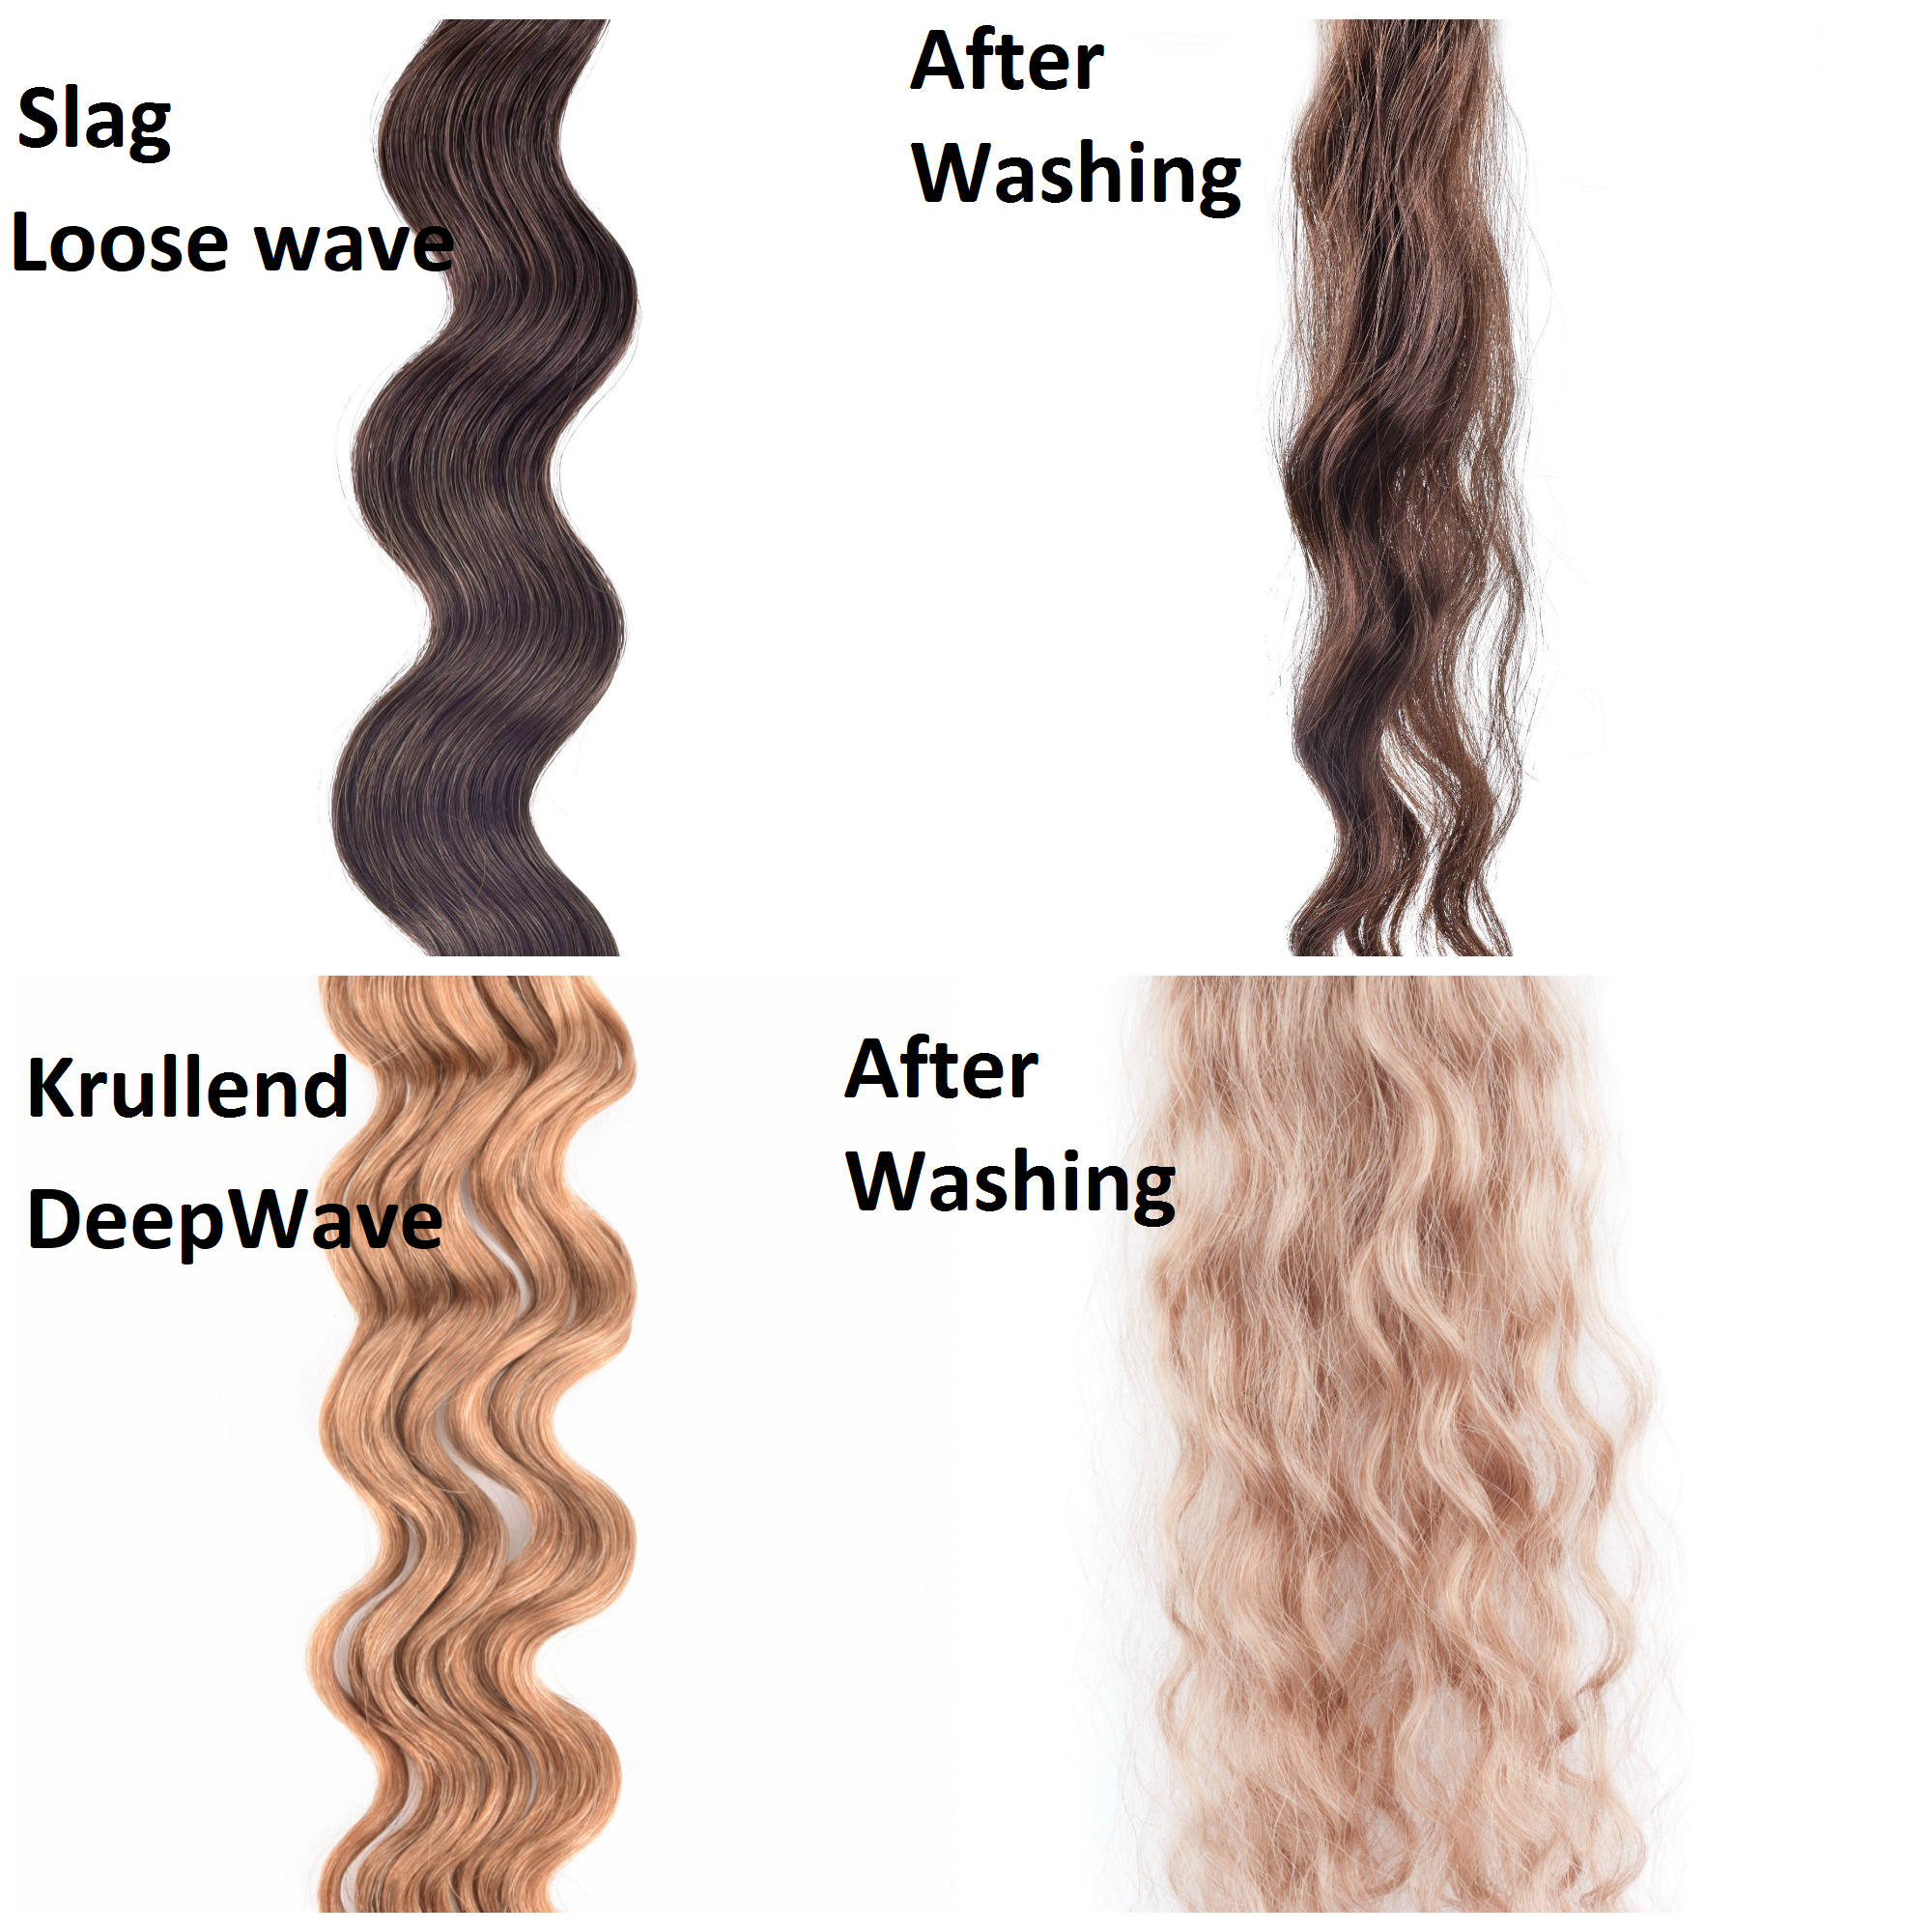 SilverFox Wax Extensions Deep Wave 55cm  #1b Natural Black